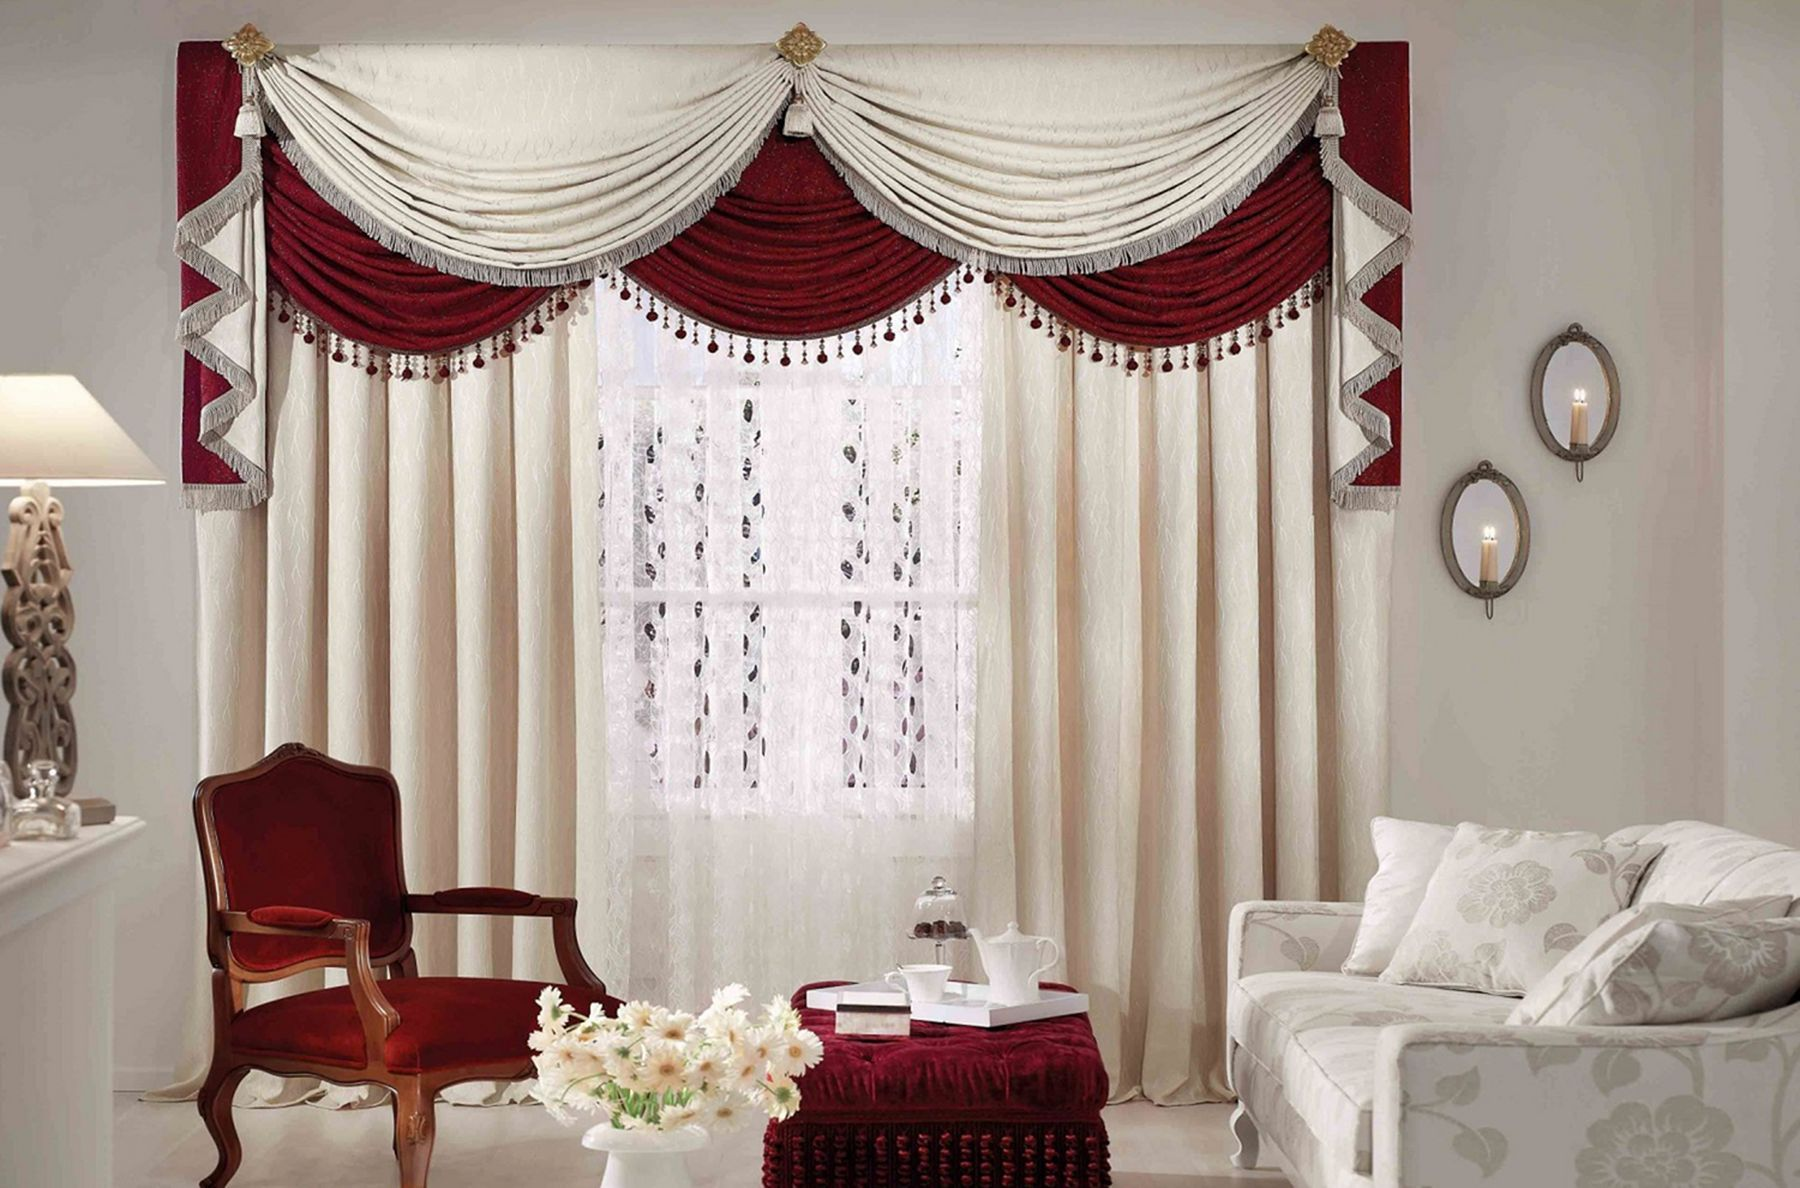 12 Beautiful Curtain Ideas For The Living Room To Be More Charming Curtaindecoration Curta Curtains Living Room Valances For Living Room Living Room Designs